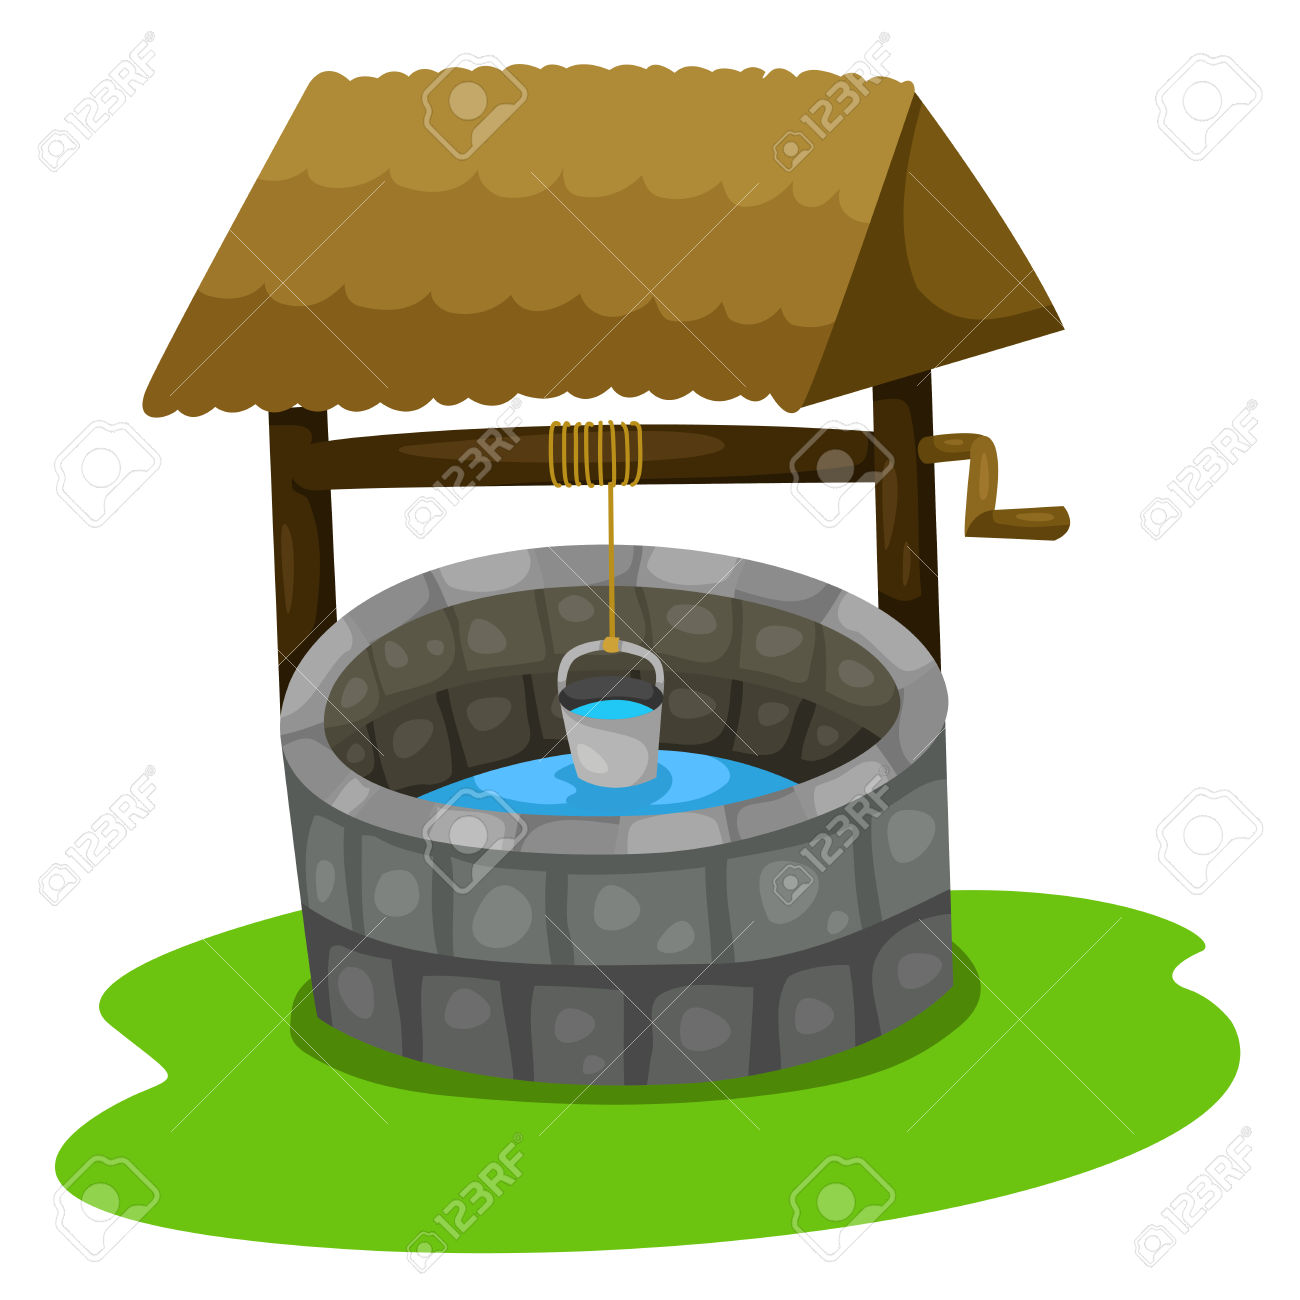 Clipart water well.